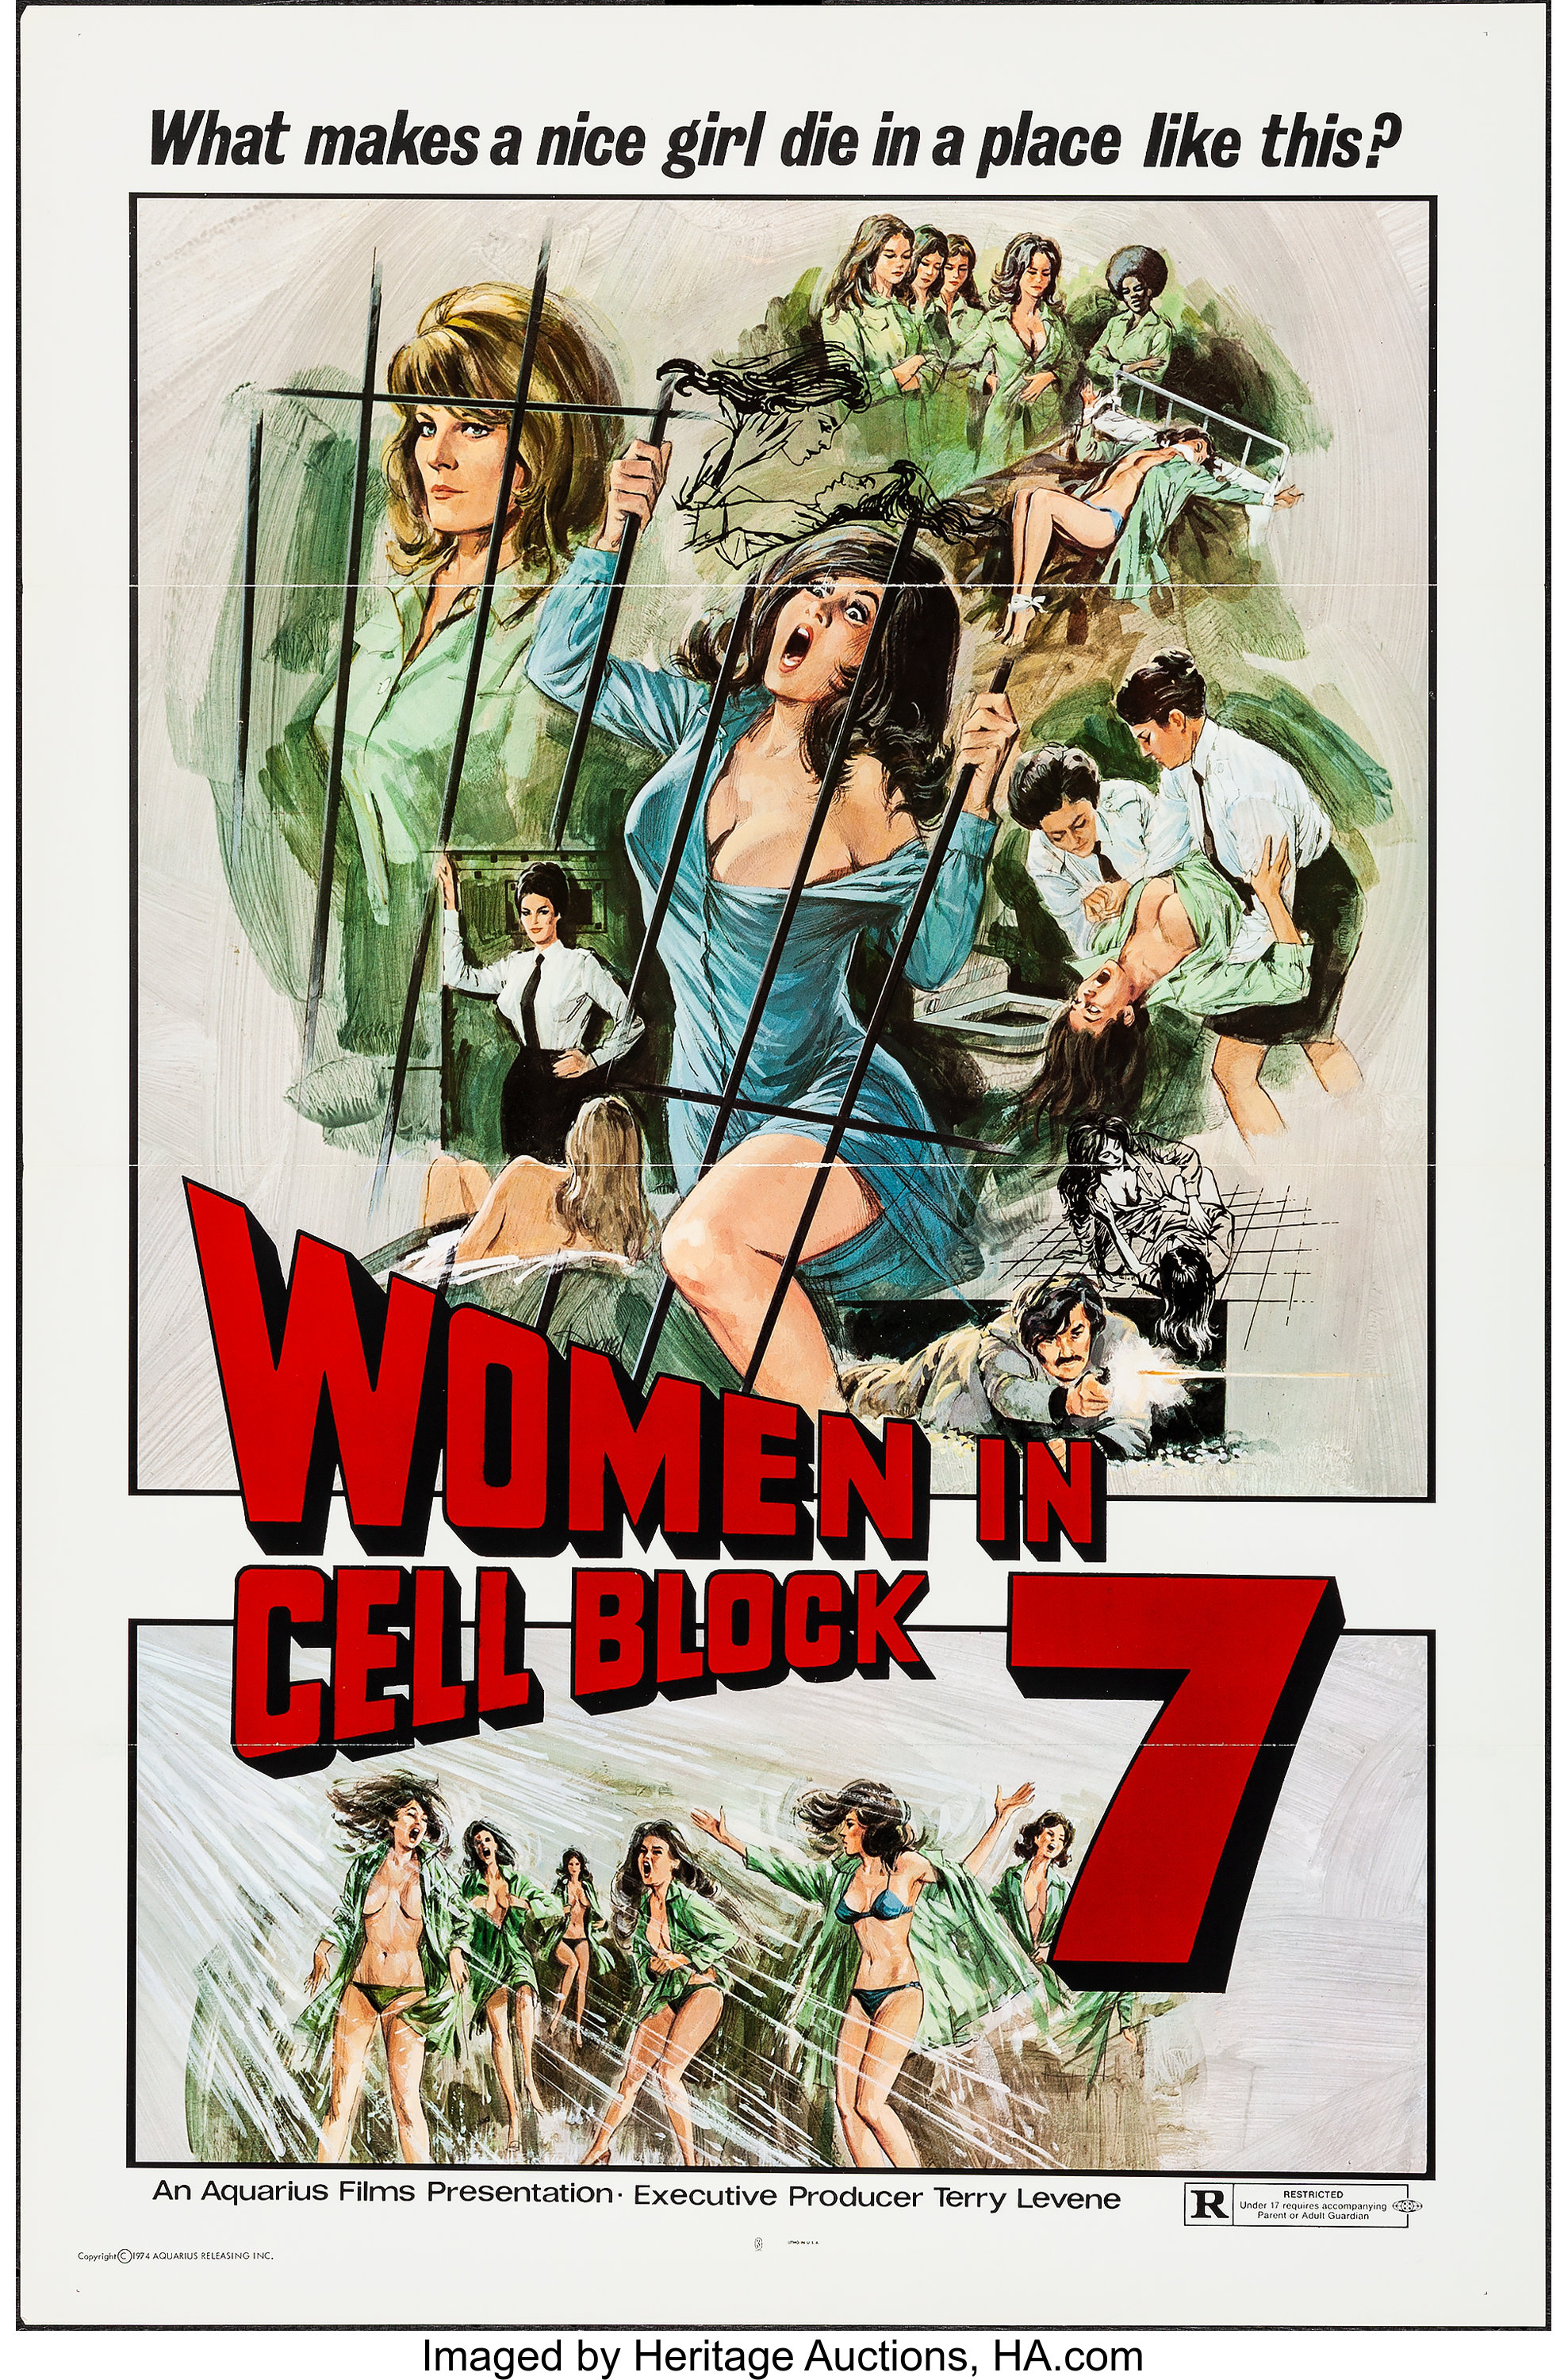 Paola Senatore women in cell block 7 & other lot (aquarius releasing, 1974). | lot #54506 | heritage auctions